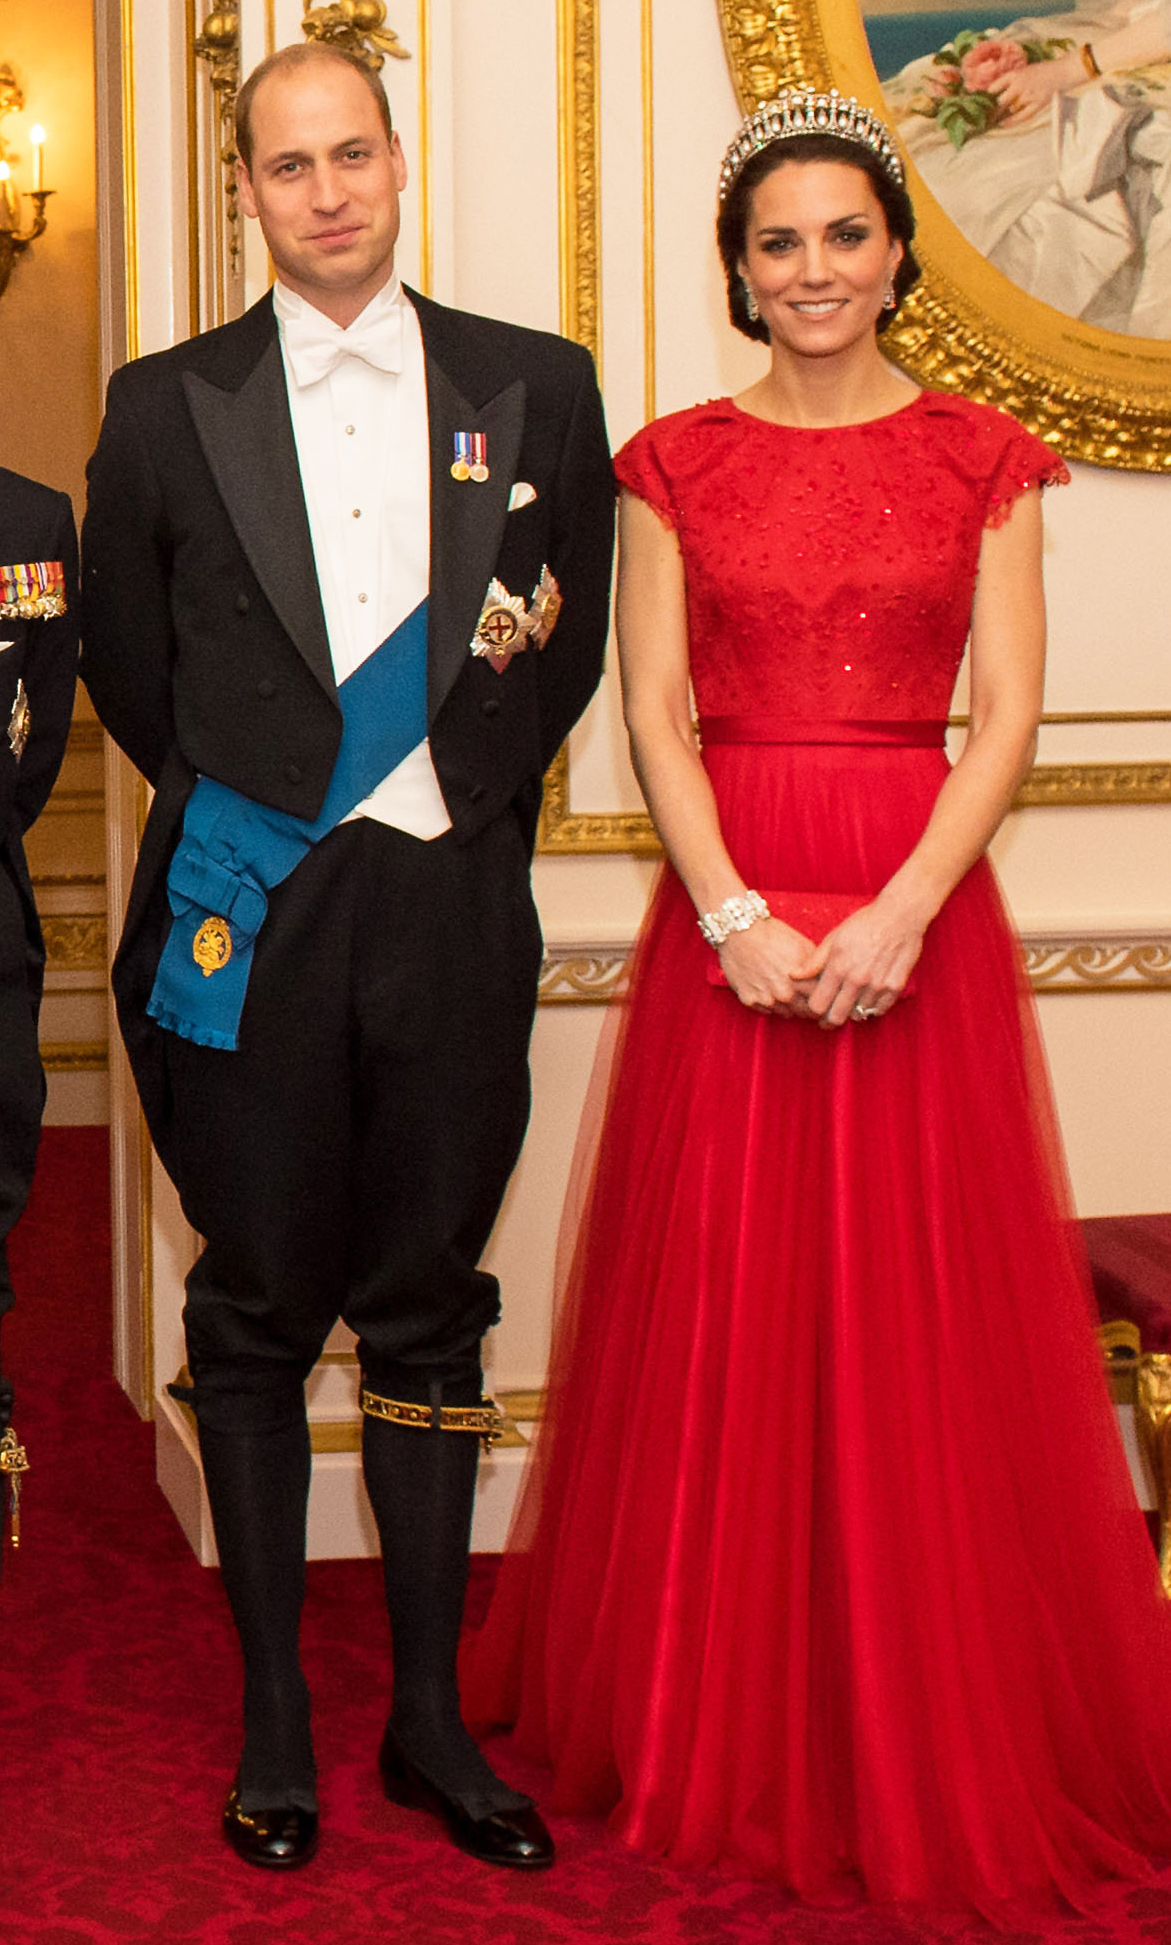 Diplomatic Corps reception.  ALTERNATE CROP The Duke and Duchess of Cambridge arrive for the annual evening reception for members of the Diplomatic Corps at Buckingham Palace, London.  Picture date: Thursday December 8, 2016. Photo credit should read: Dominic Lipinski/PA Wire URN:29408505